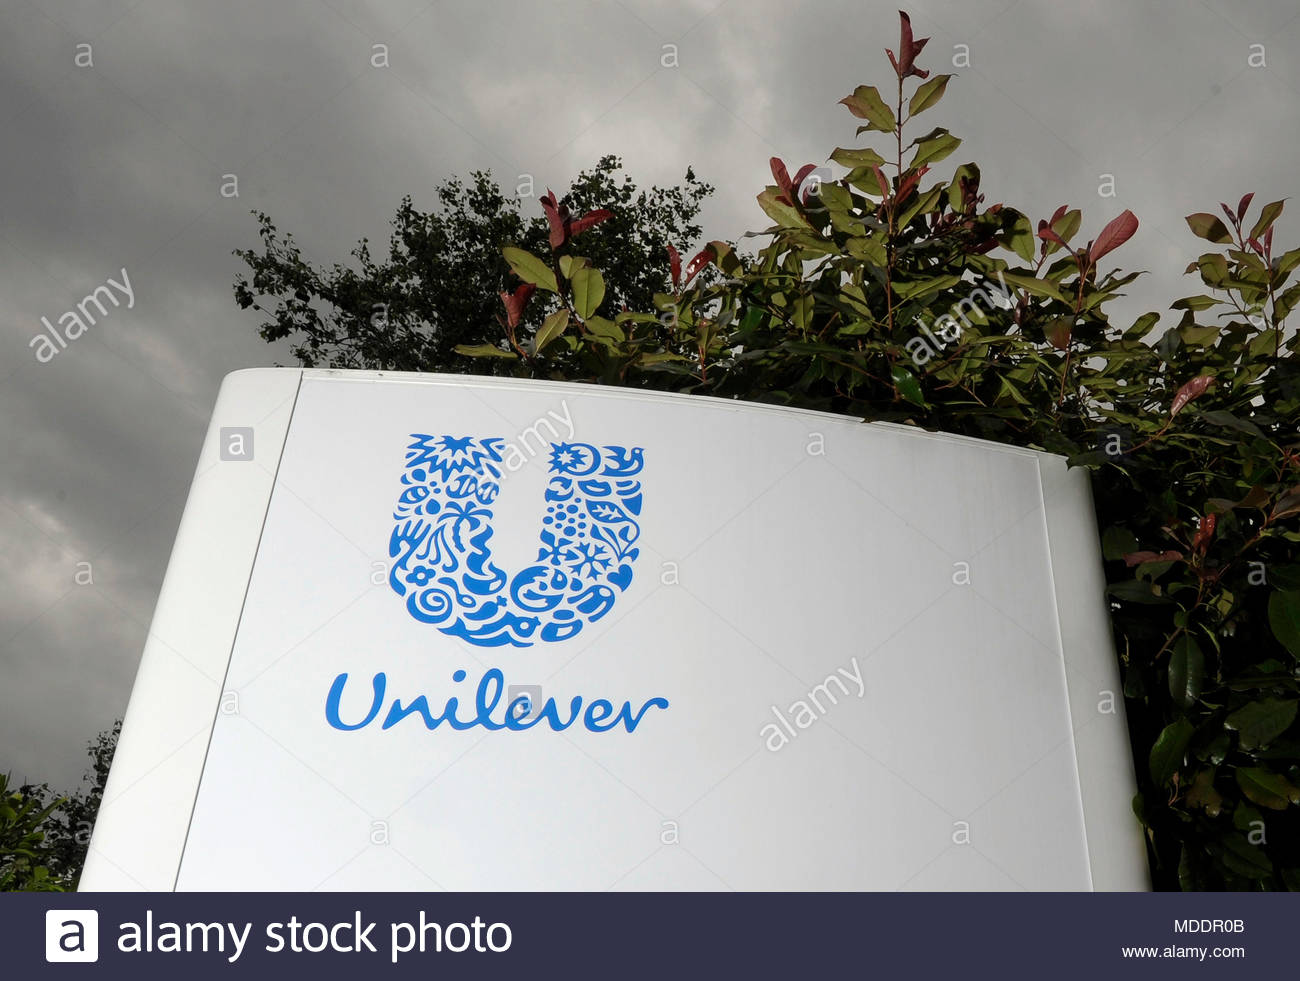 File photo dated 14/06/12 of a Unilever sign, as the company as reported a 5% slump in first quarter sales but upped its dividend and announced a 6 billion euro (£5.2 billsha) share buyback programme amid investor opposition to basing eadquarters in Rotterdam. PRESS ASSOCIATIONATION Photo. Issue date: Thursday April 19, 2018. The consumer goods giant said turnover fell to 12.6 billion euros (£11 billion) - down 5.2% compared to the same period in 2017 - but turned attention to underlyines growth which is strippedipped of foreign-exchange movements and came in at 3.4%. See PA story CITY Unil - Stock Image